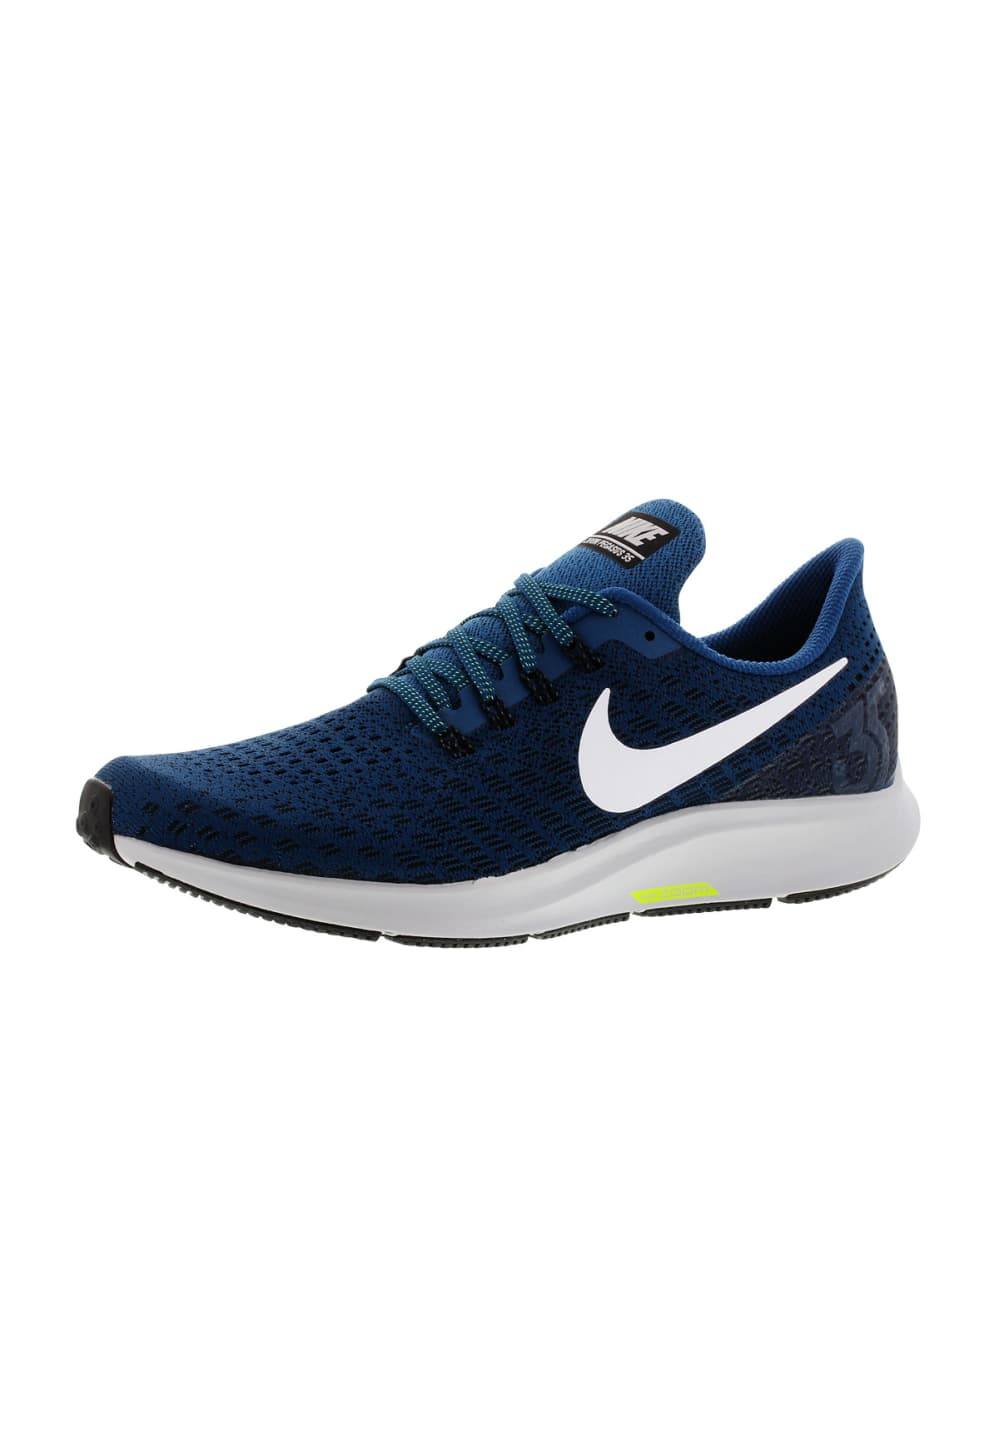 b313db7f403f ... Nike Air Zoom Pegasus 35 (GS) - Running shoes - Blue. Back to Overview.  1  2  3  4  5. Previous